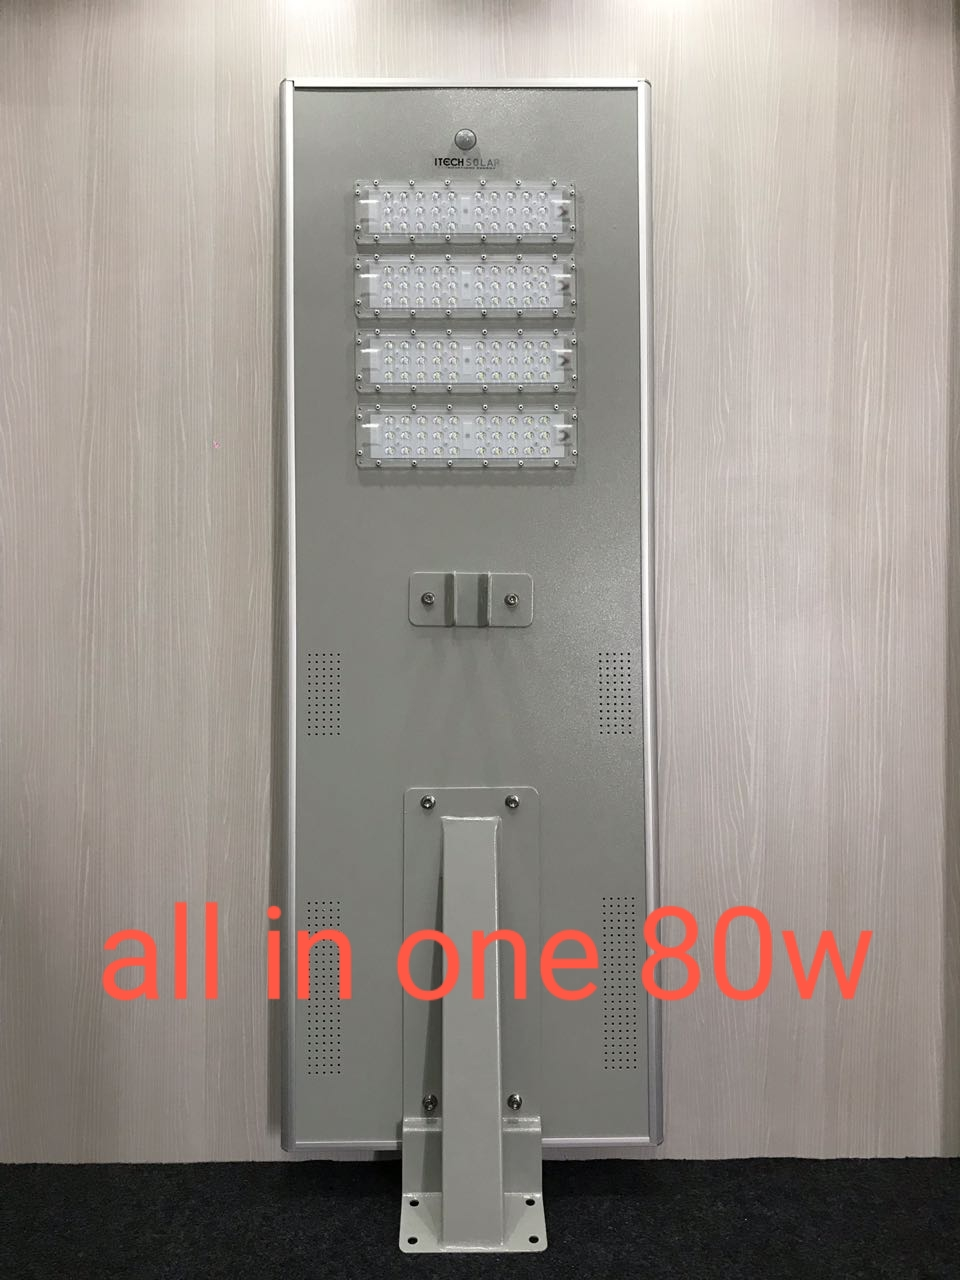 All in one 80w